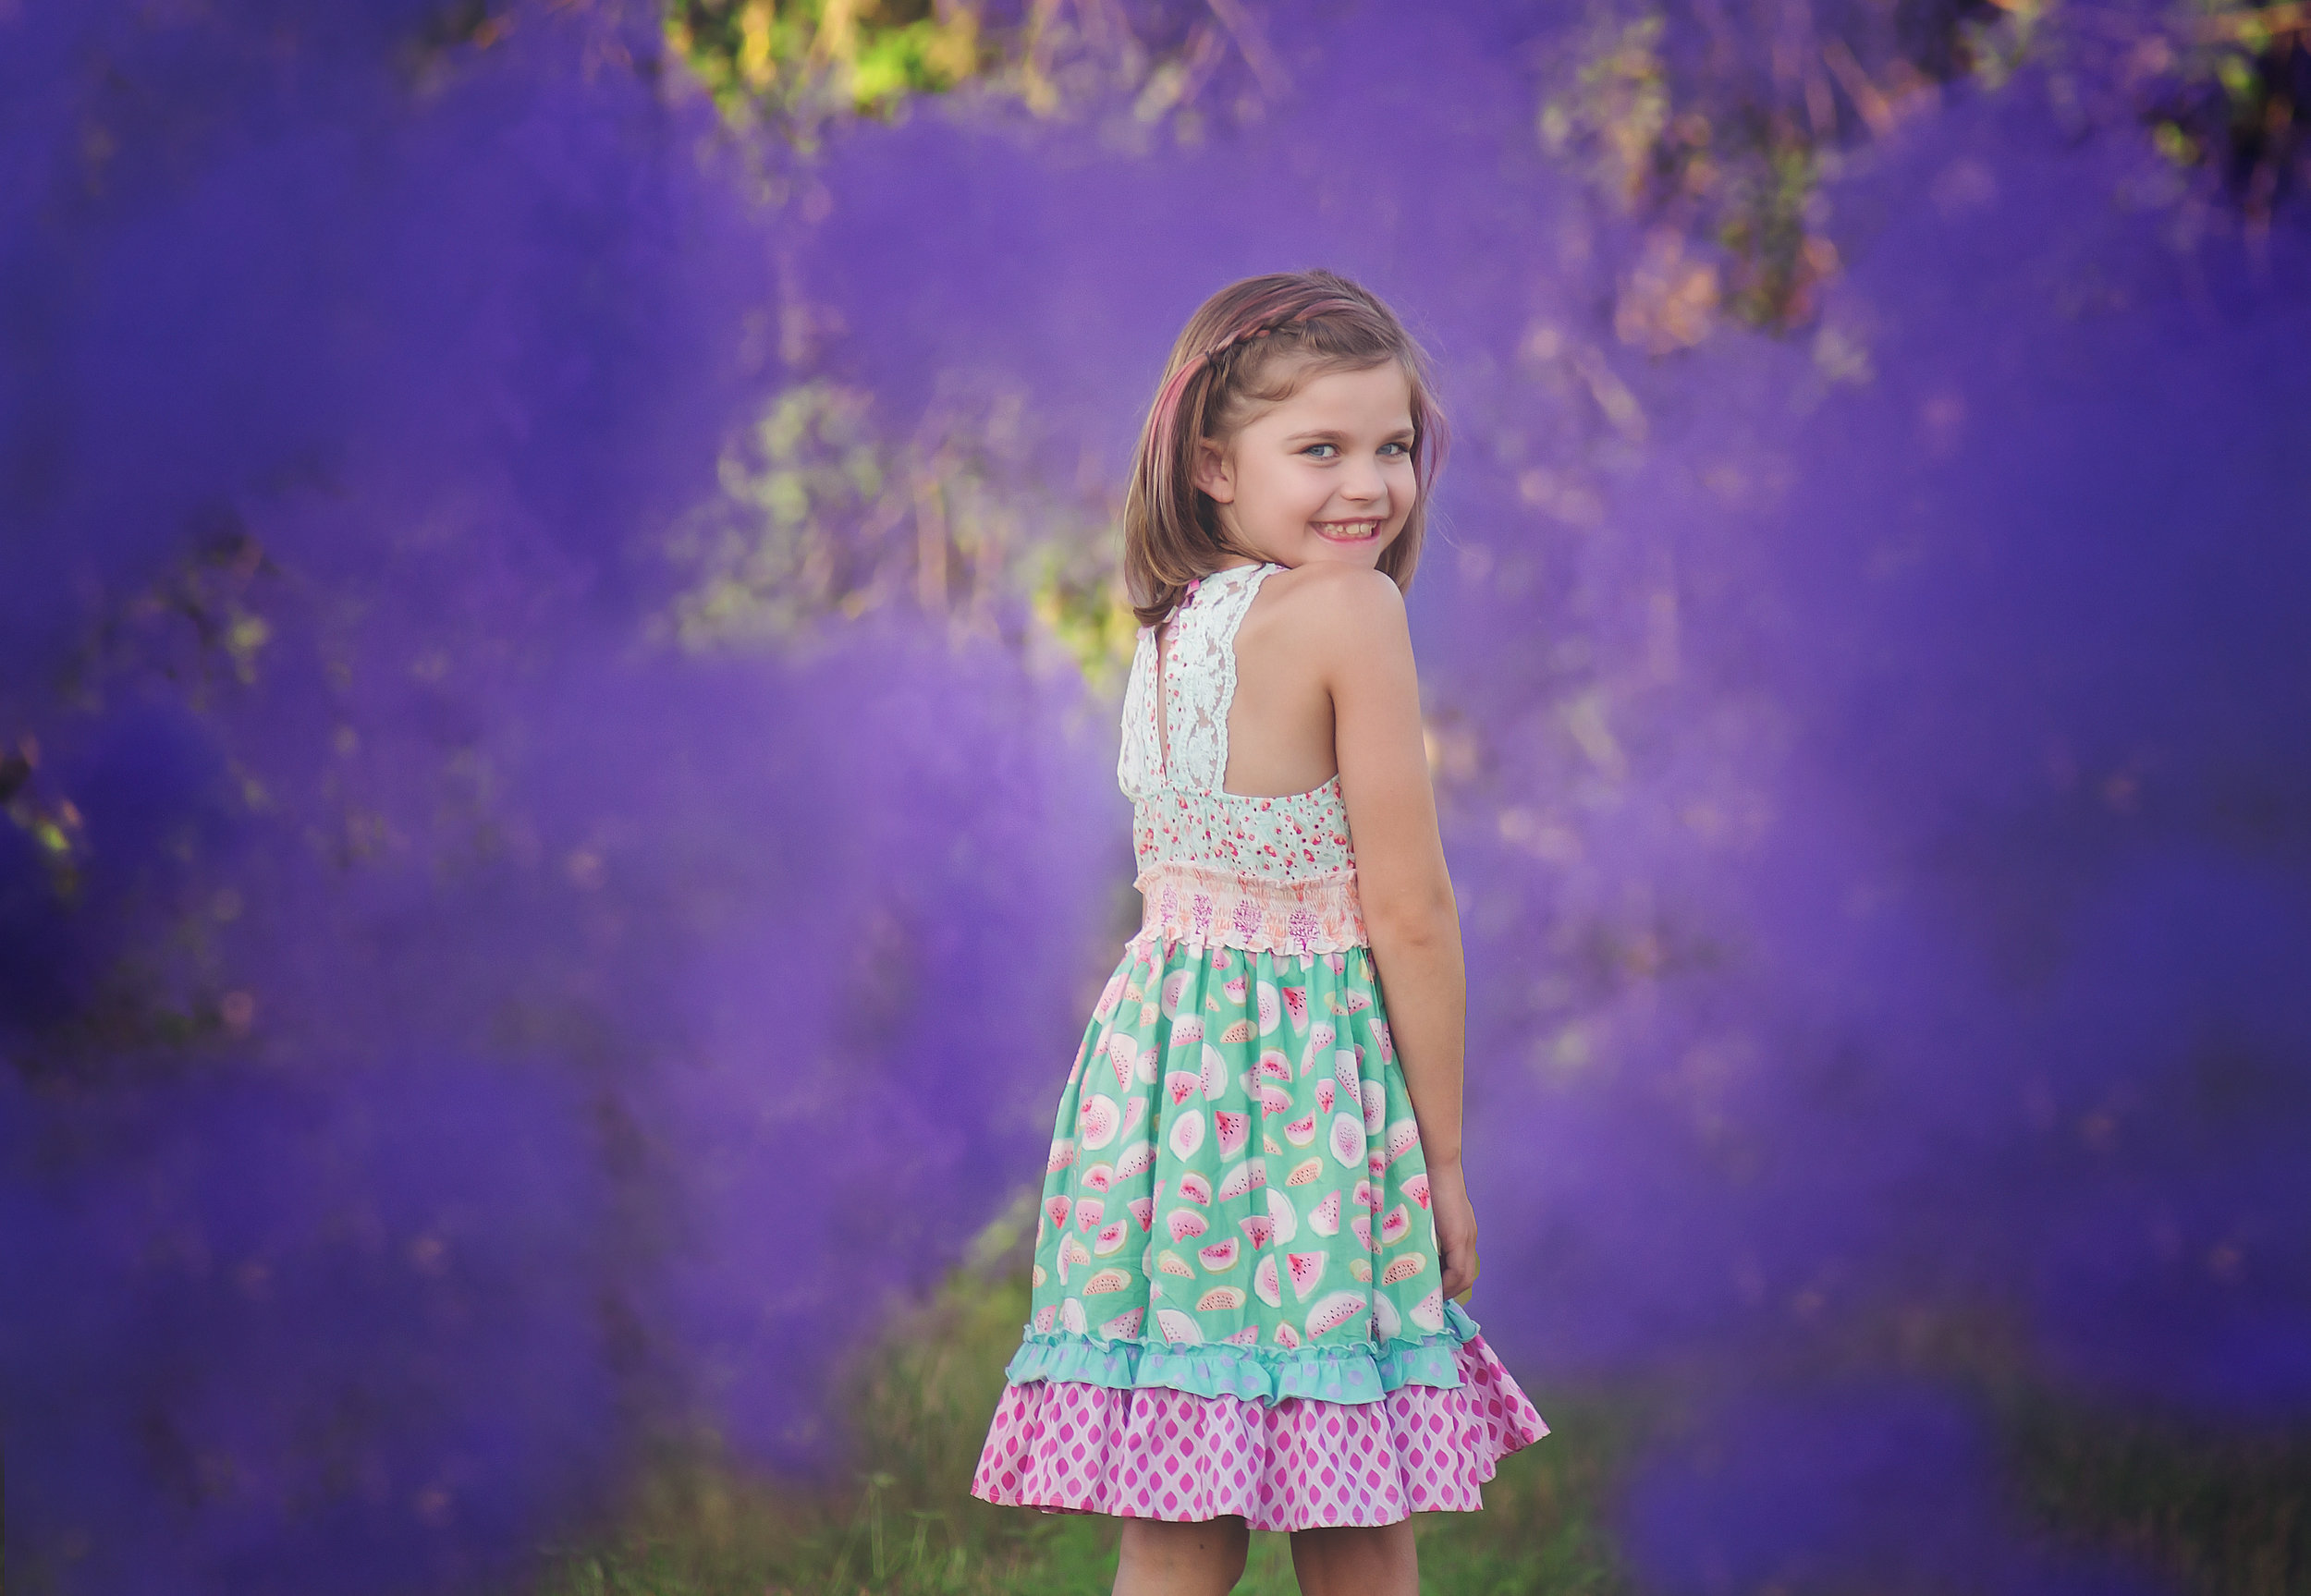 children's photographer in bradenton.jpg